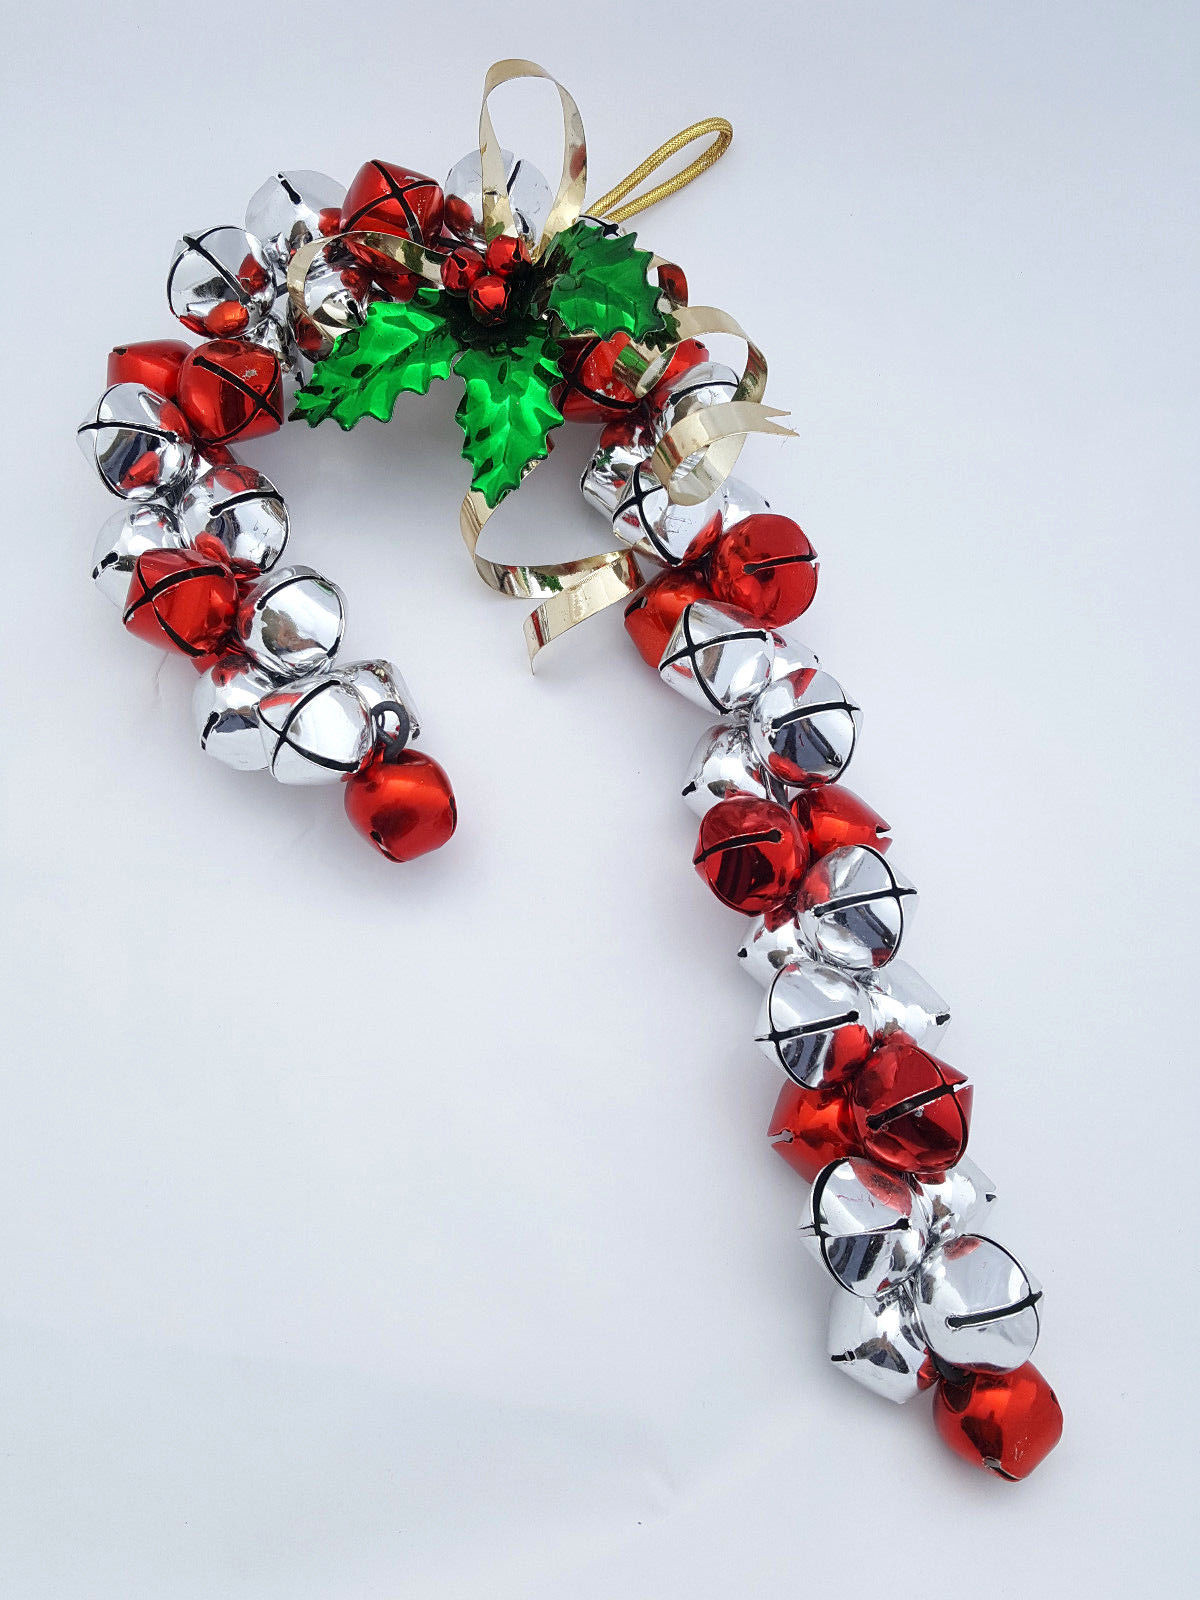 Christmas Bells Decorations Awesome Christmas Door Decor Red and Silver Jingle Bells Sleigh Of Superb 46 Ideas Christmas Bells Decorations